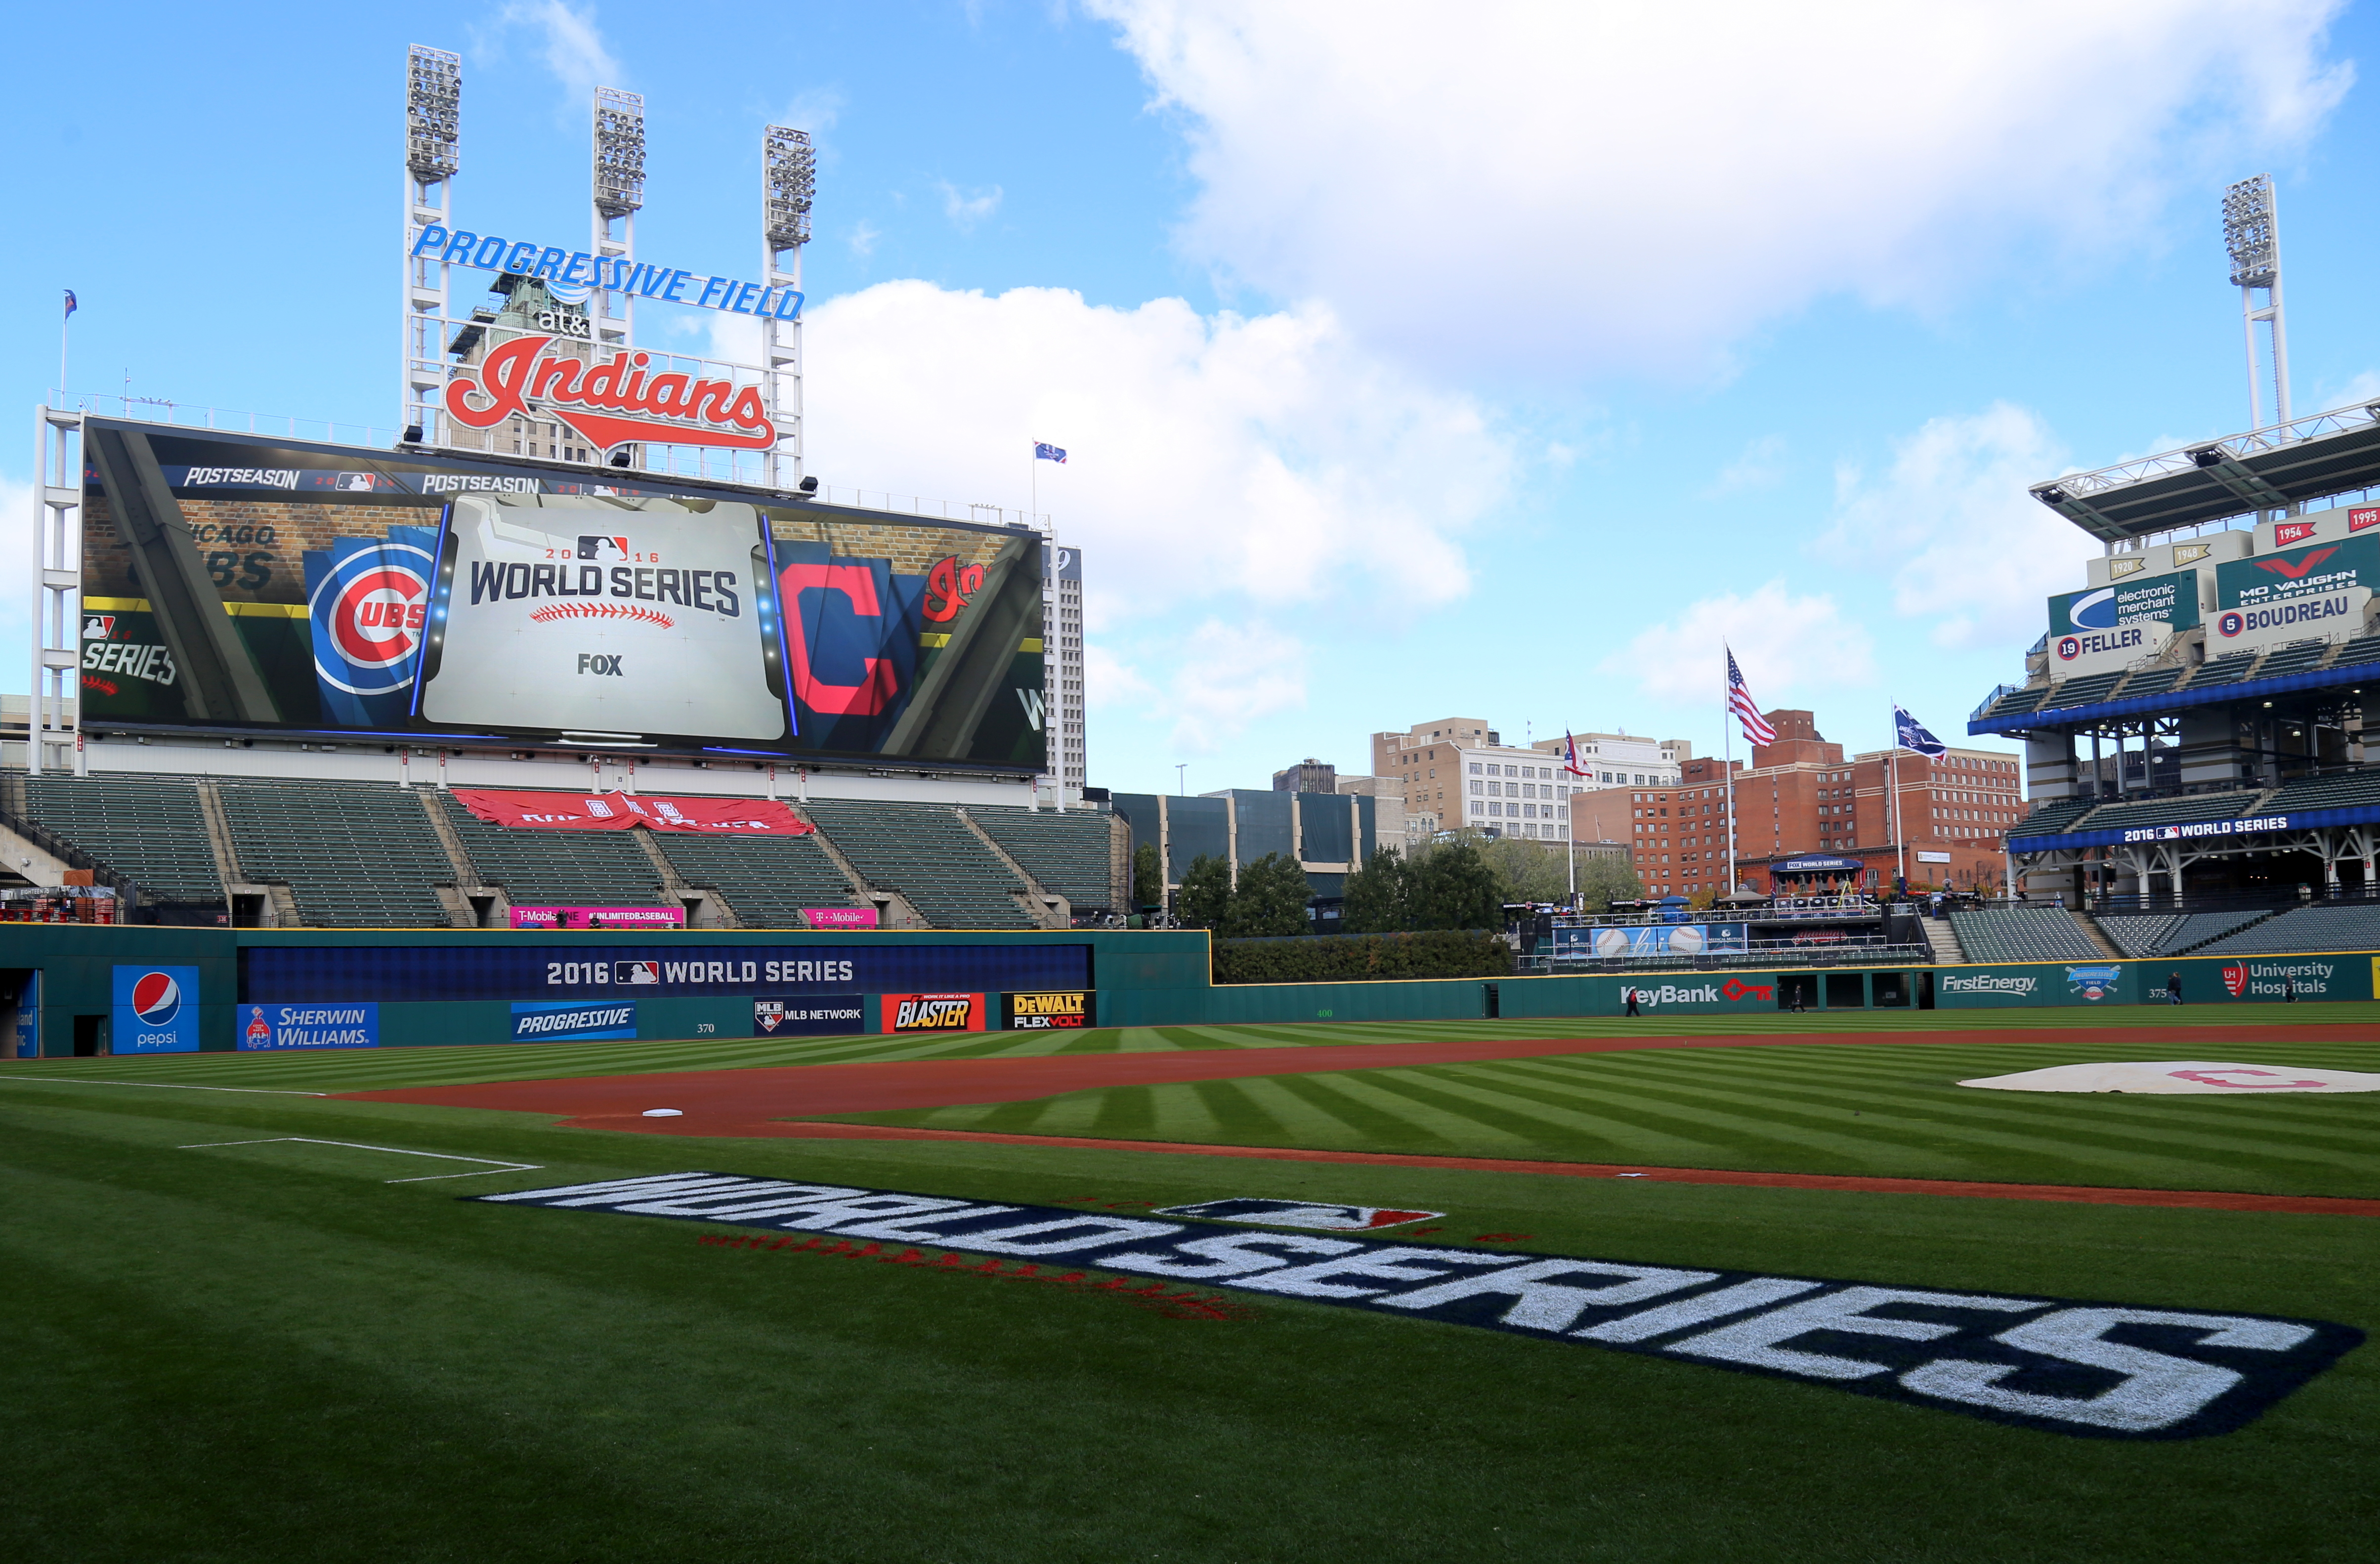 File:Progressive Field, hours before Game 1 of the 2016 World Series.jpg - Wikipedia